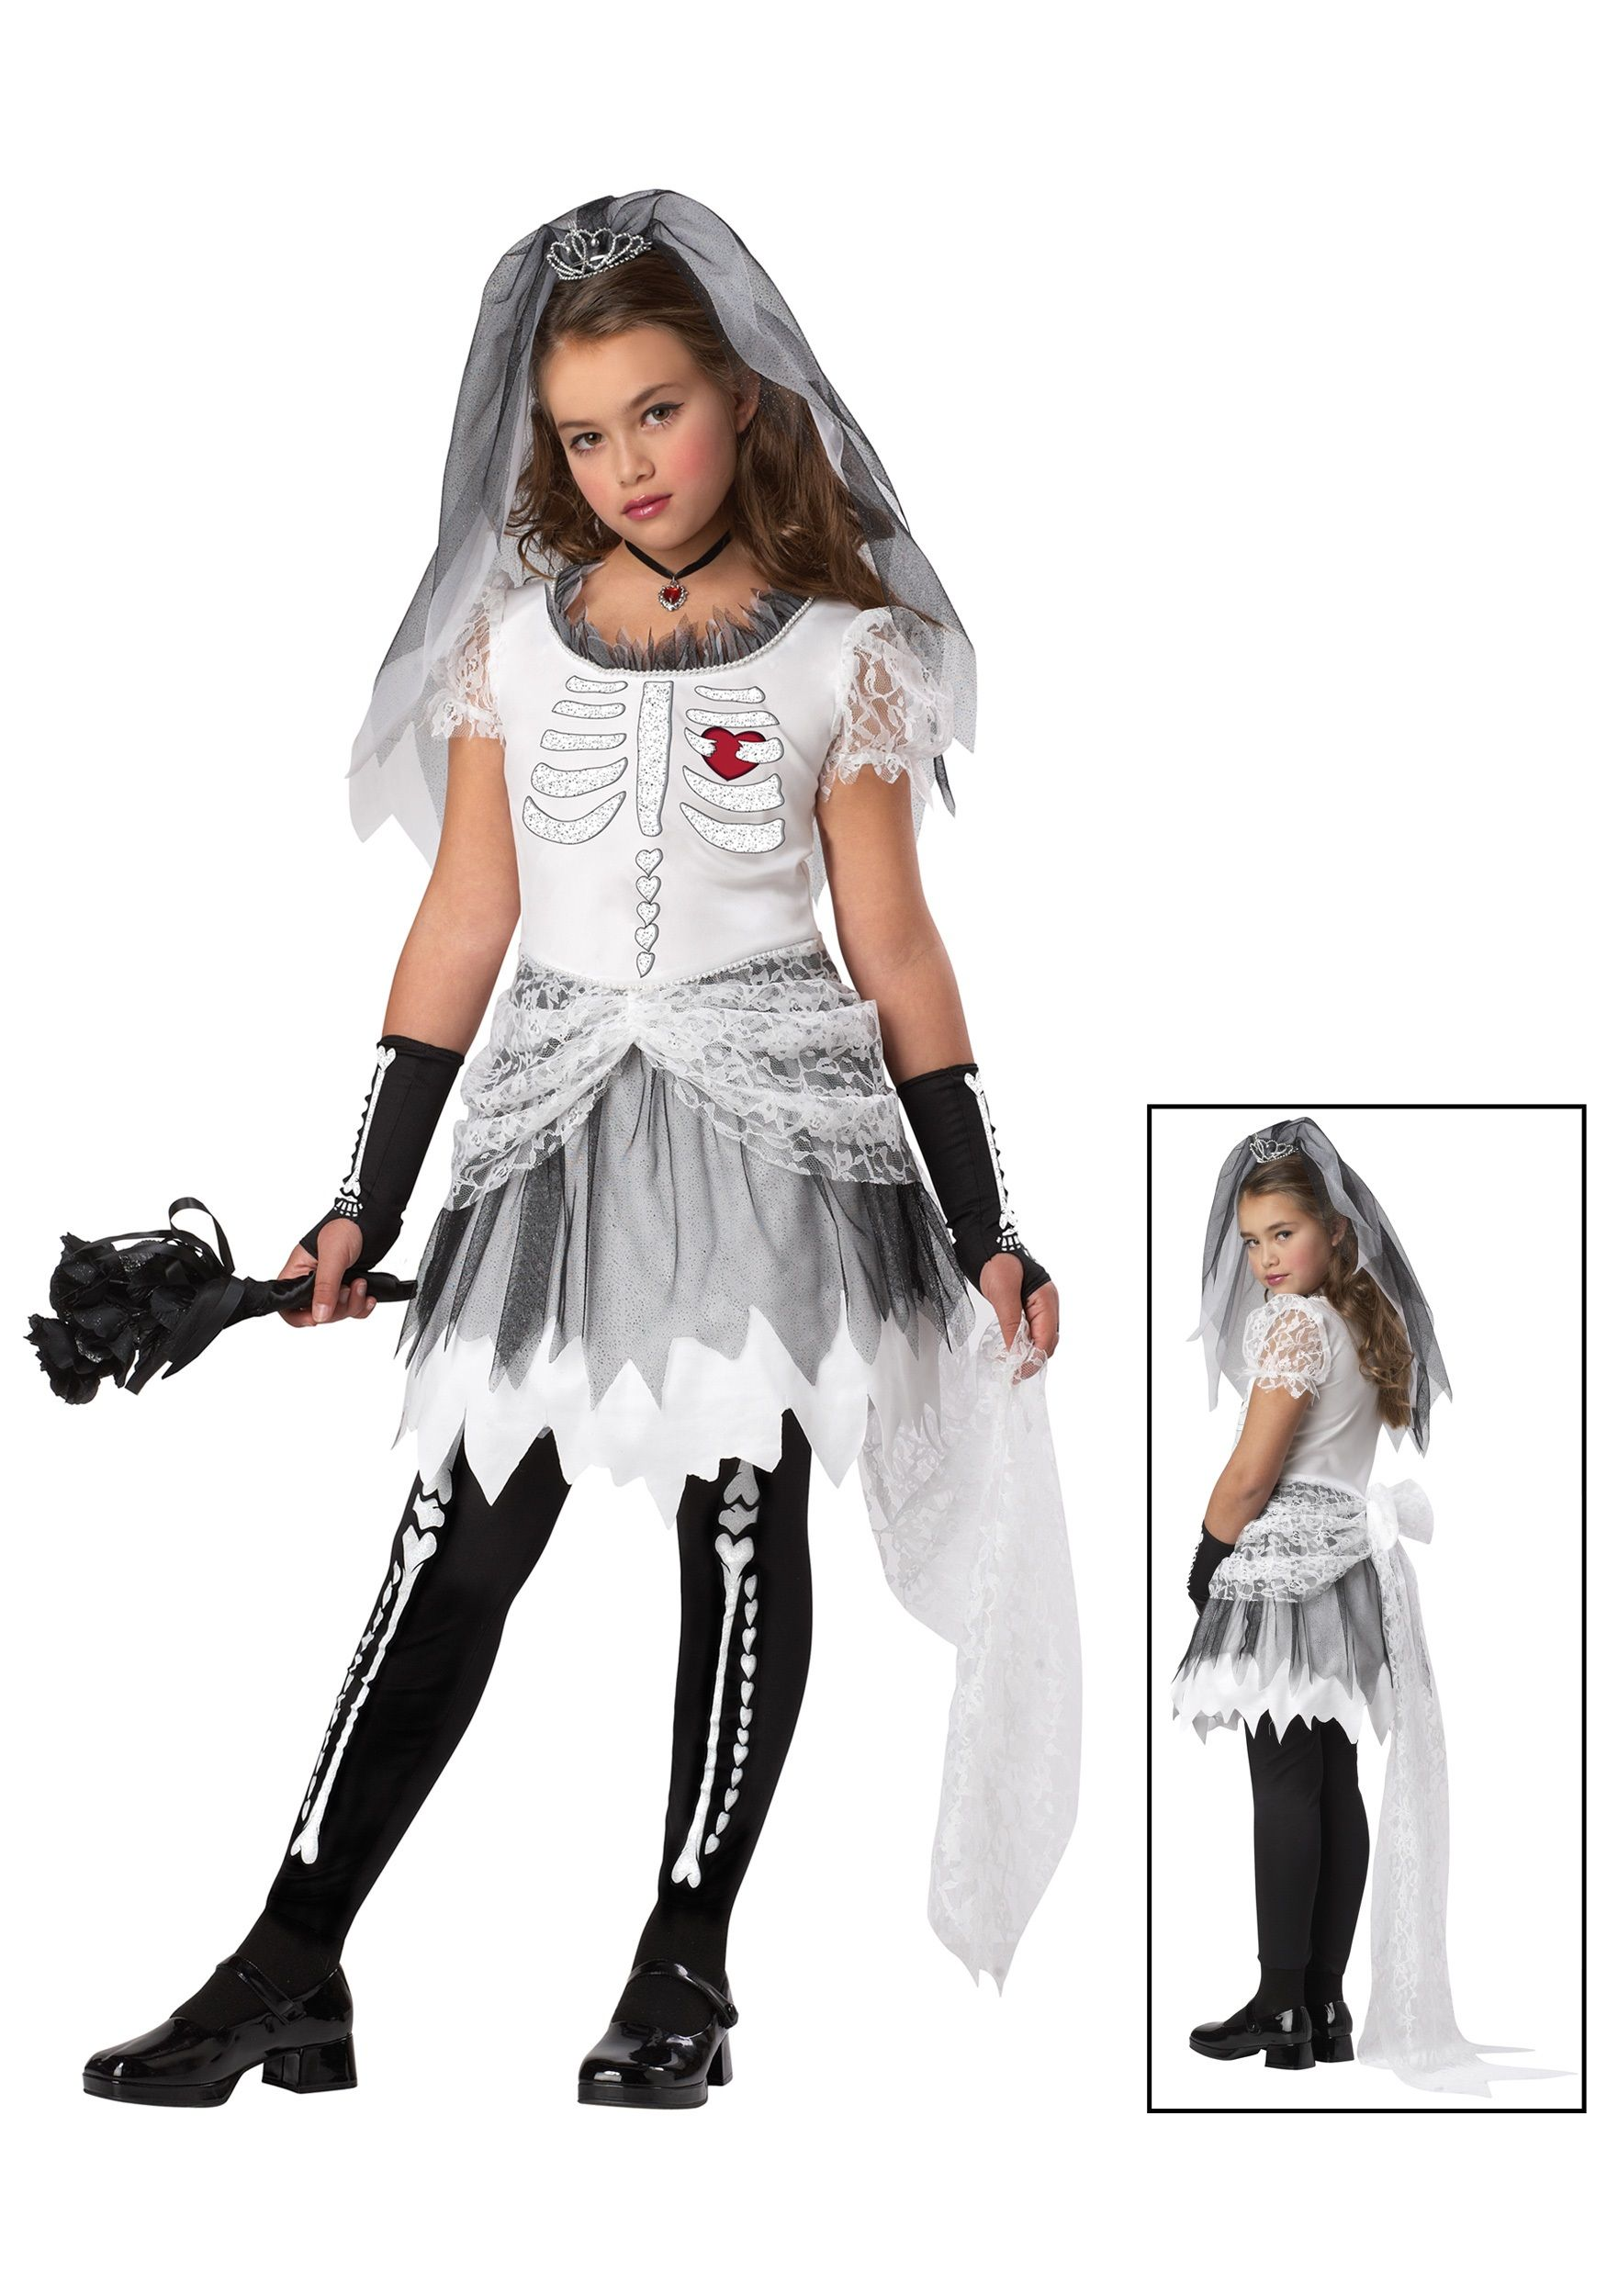 Girls Bride Halloween Costume Bride costume, Bride of